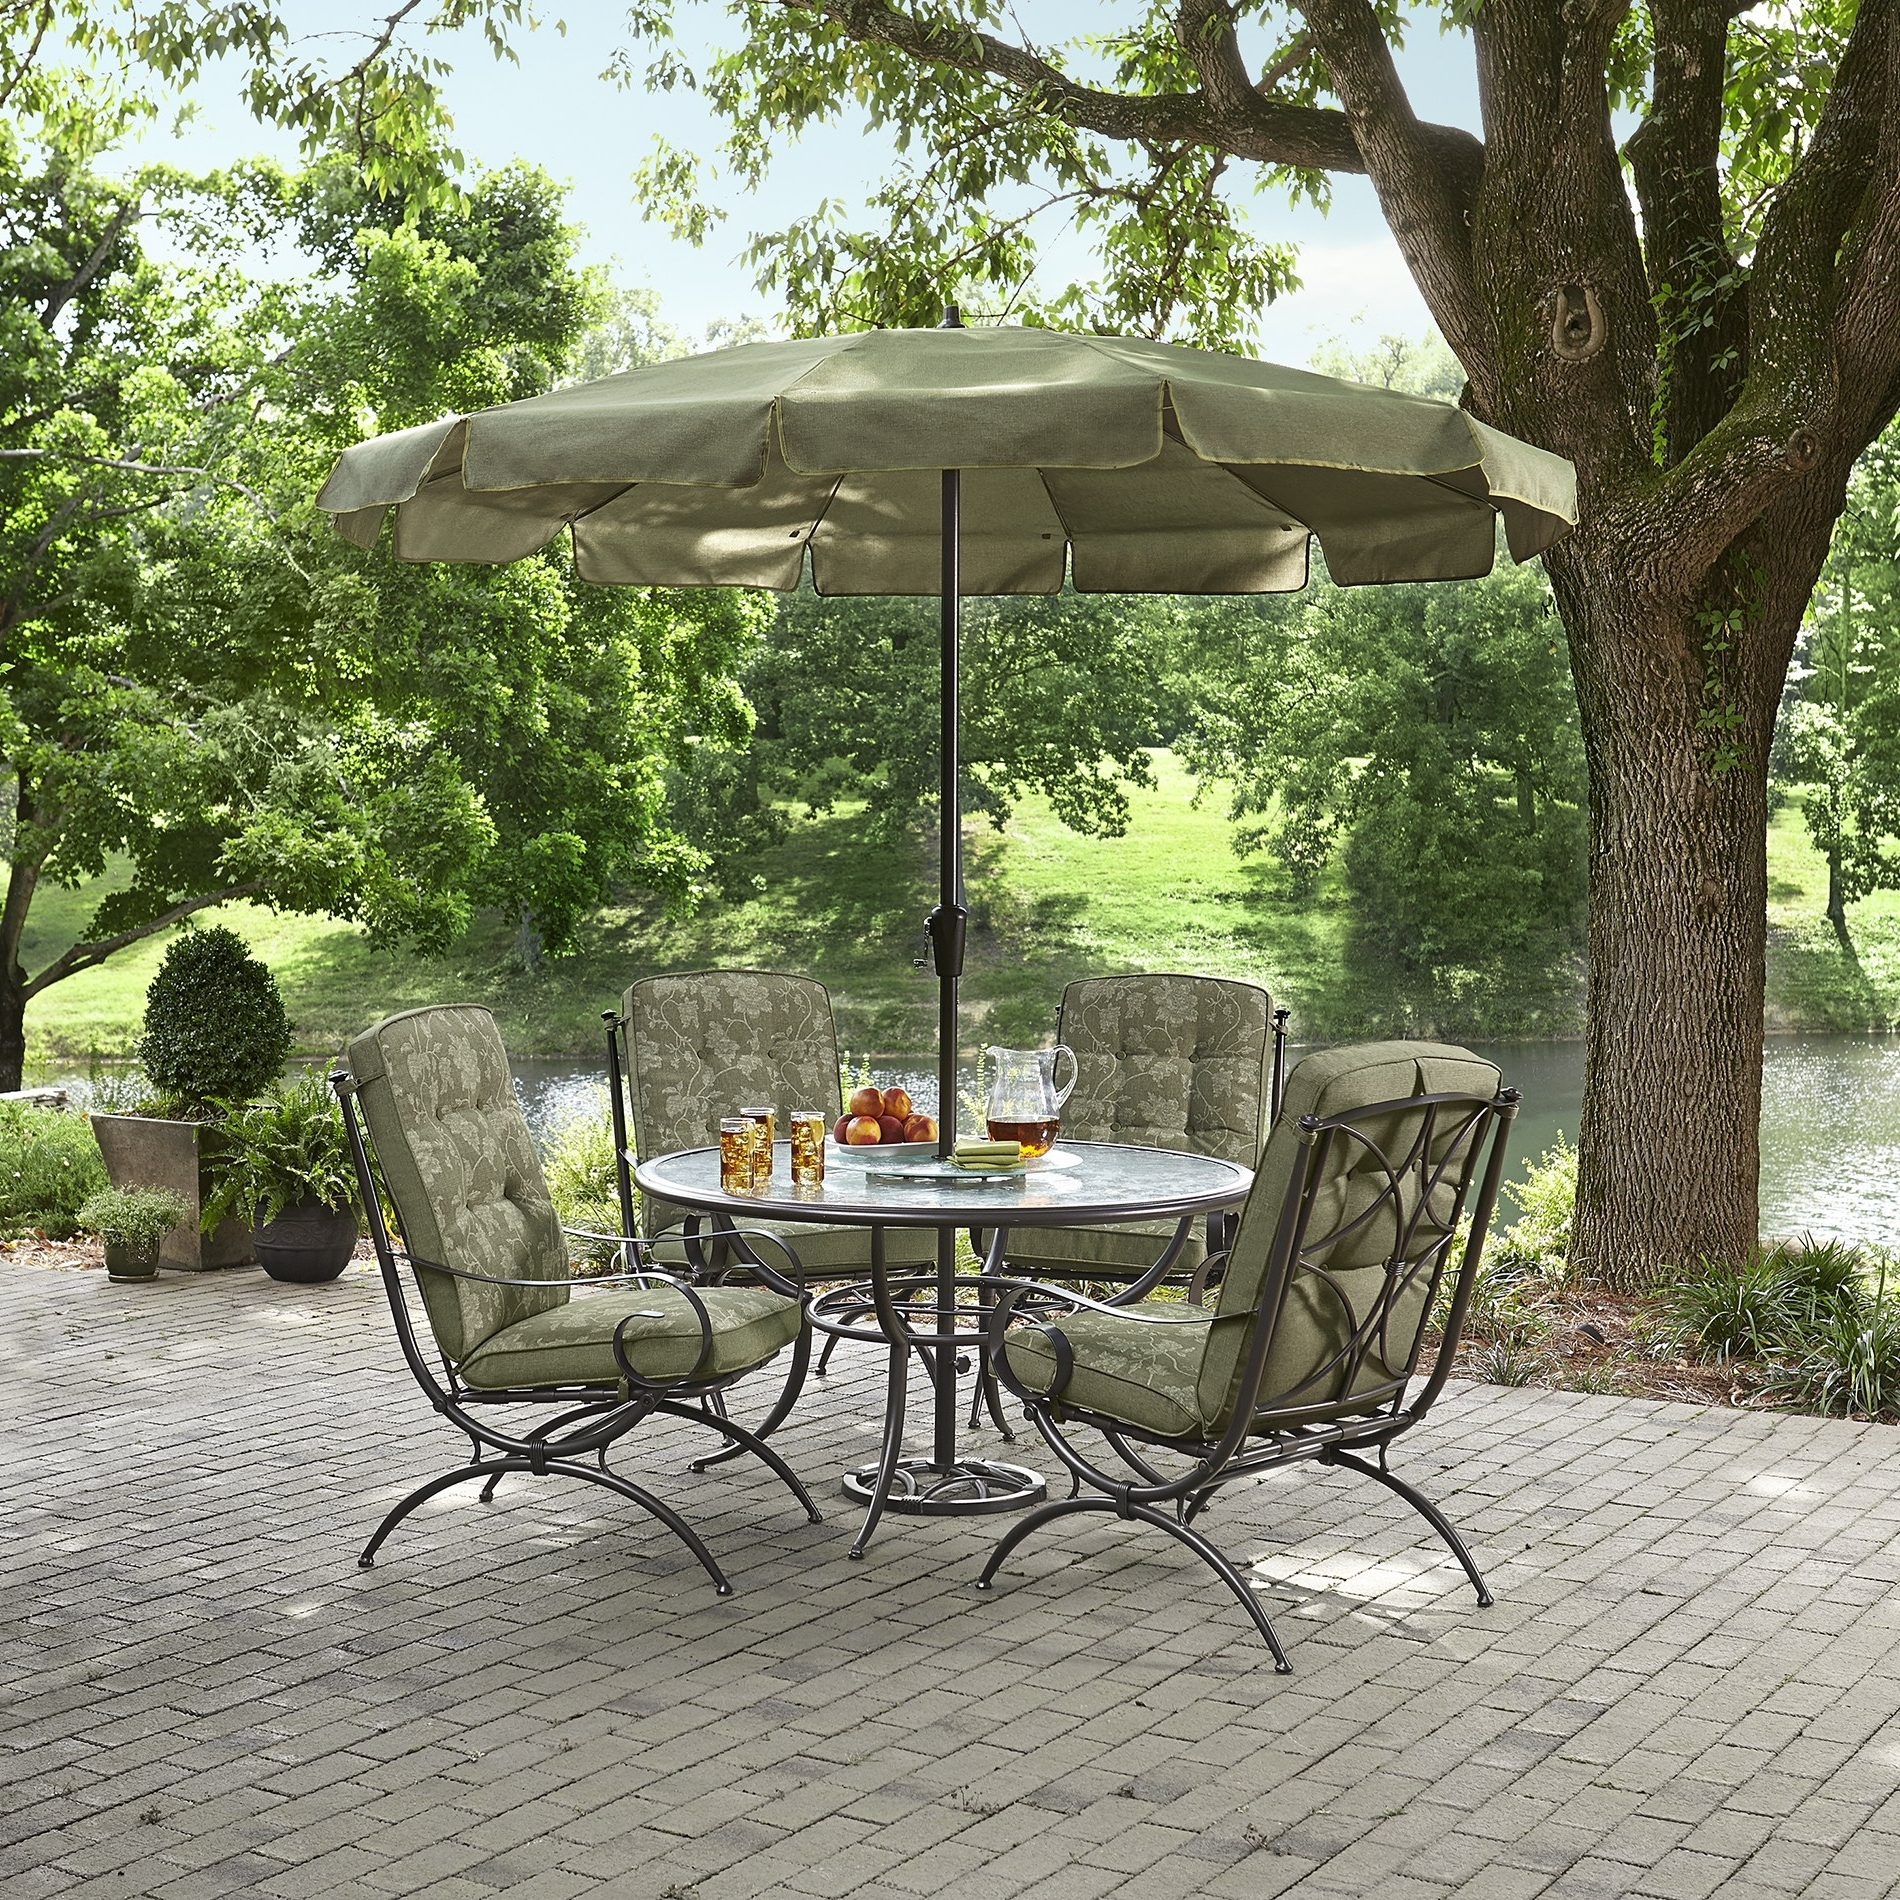 Impeccable Kmart Outdoor Furniture Ebel Patio Furniture Ebel Patio Inside Popular Kmart Patio Umbrellas (Gallery 6 of 20)